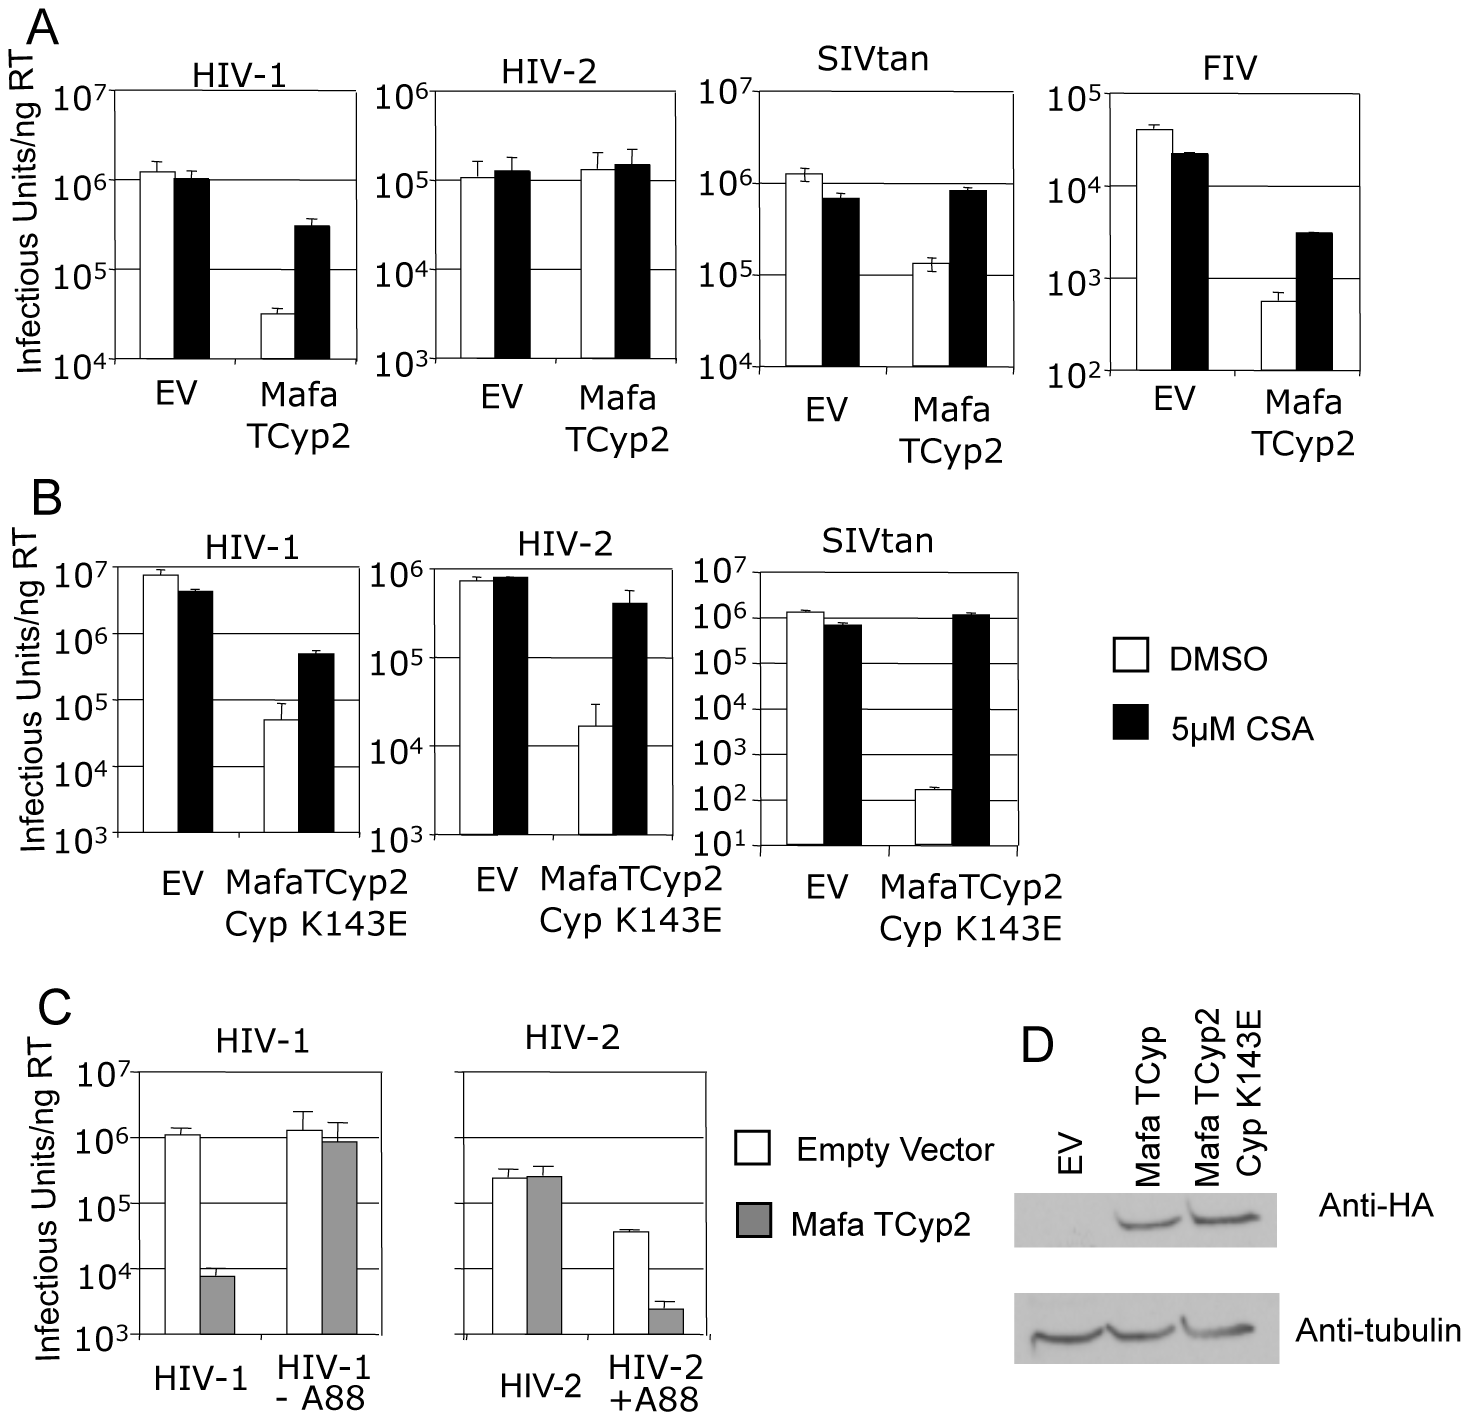 Restriction specificity of TRIMCyps against HIV-1, HIV-2 and FIV.